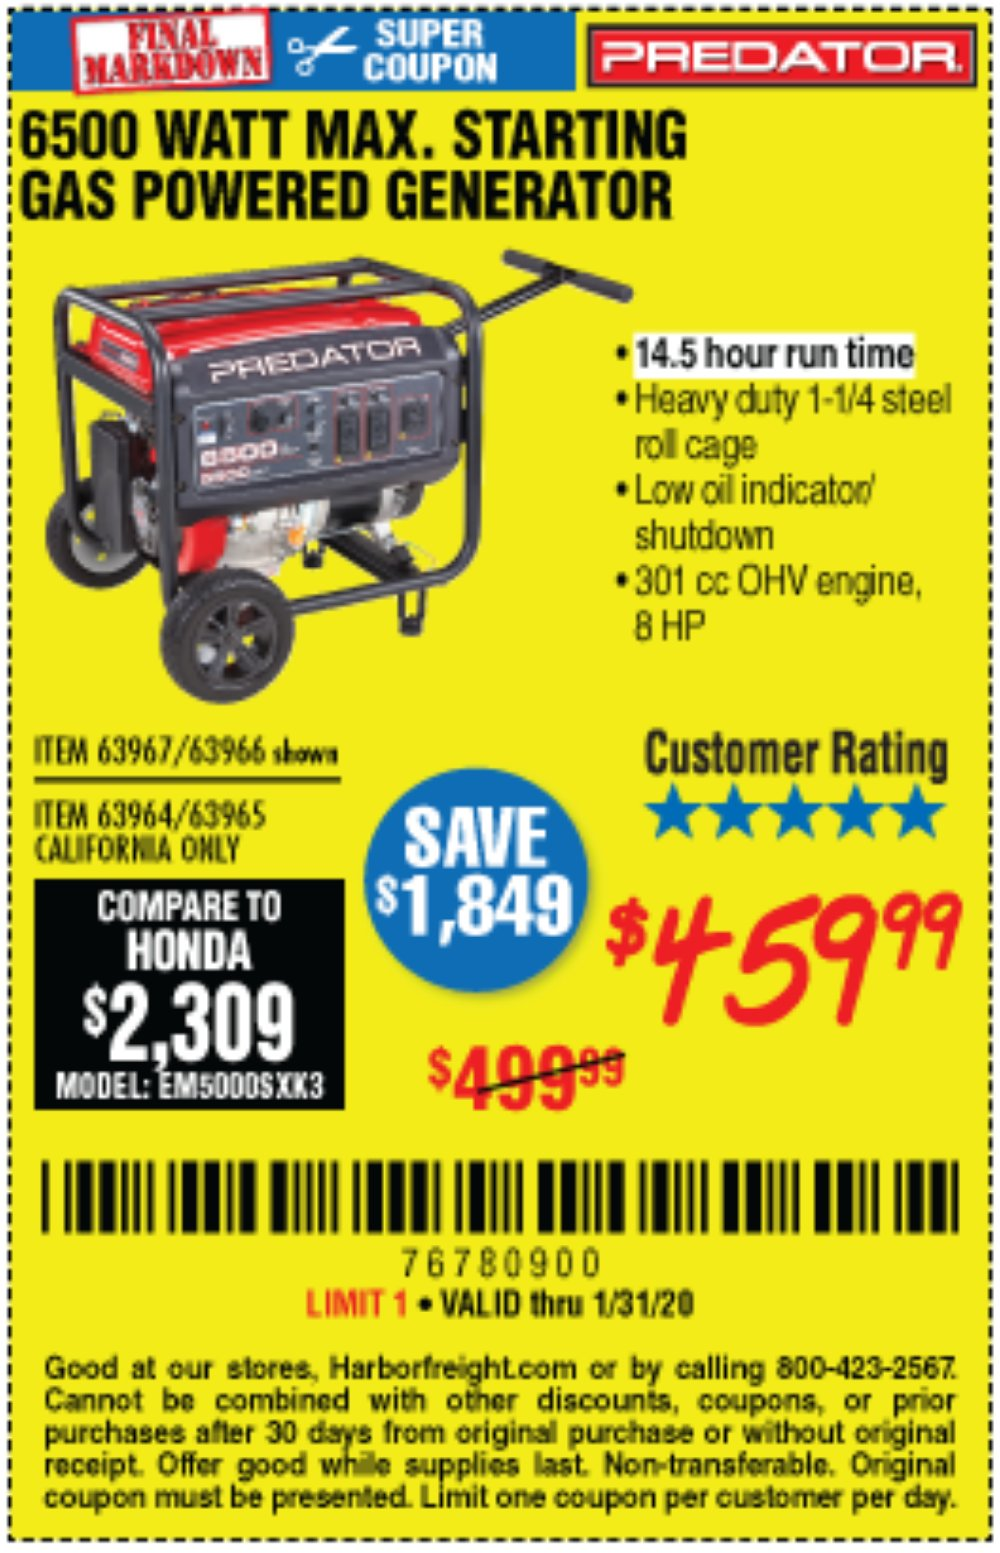 Harbor Freight Coupon, HF Coupons - 6500 Max. Starting/5500 Running Watts 8 Hp (301 Cc) Gas Generator